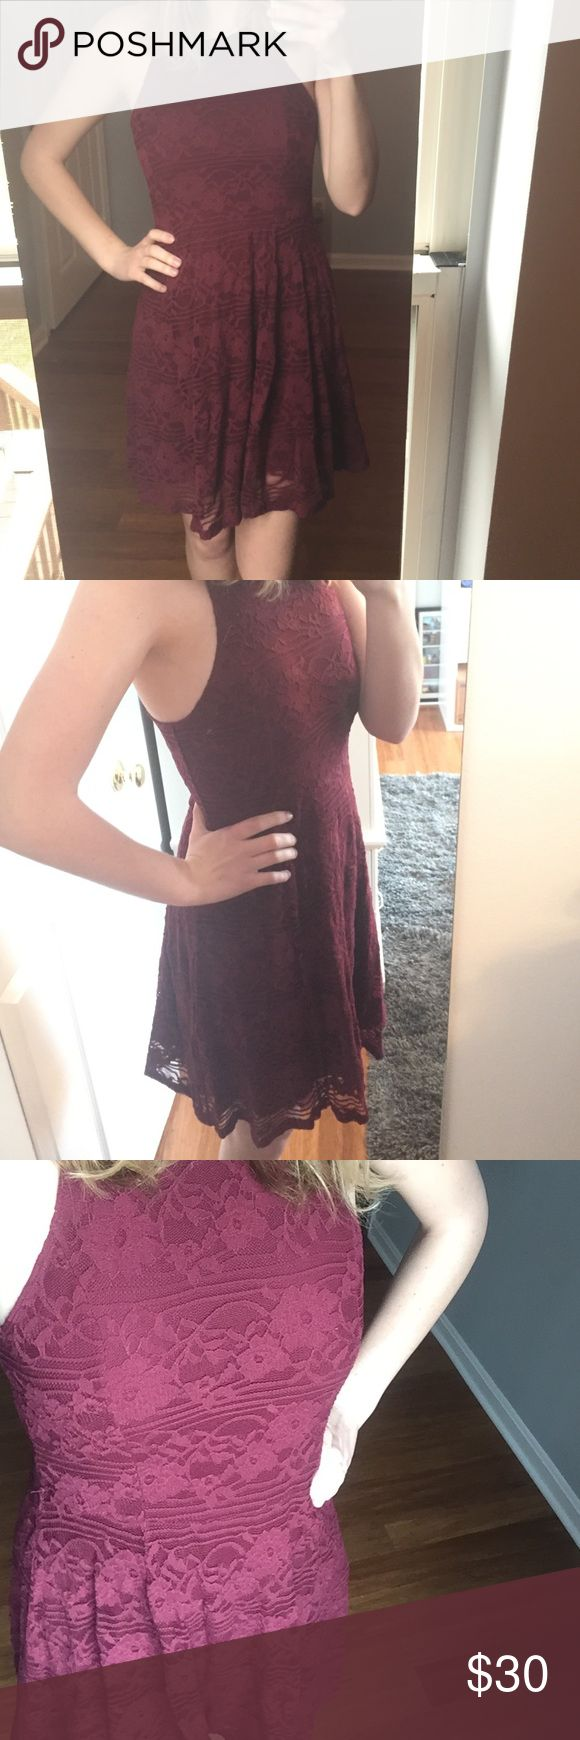 Maroon Abercrombie and Fitch dress Perfect condition, only worn once, lace maroon dress. Perfect for date nights or special occasions. Abercrombie & Fitch Dresses